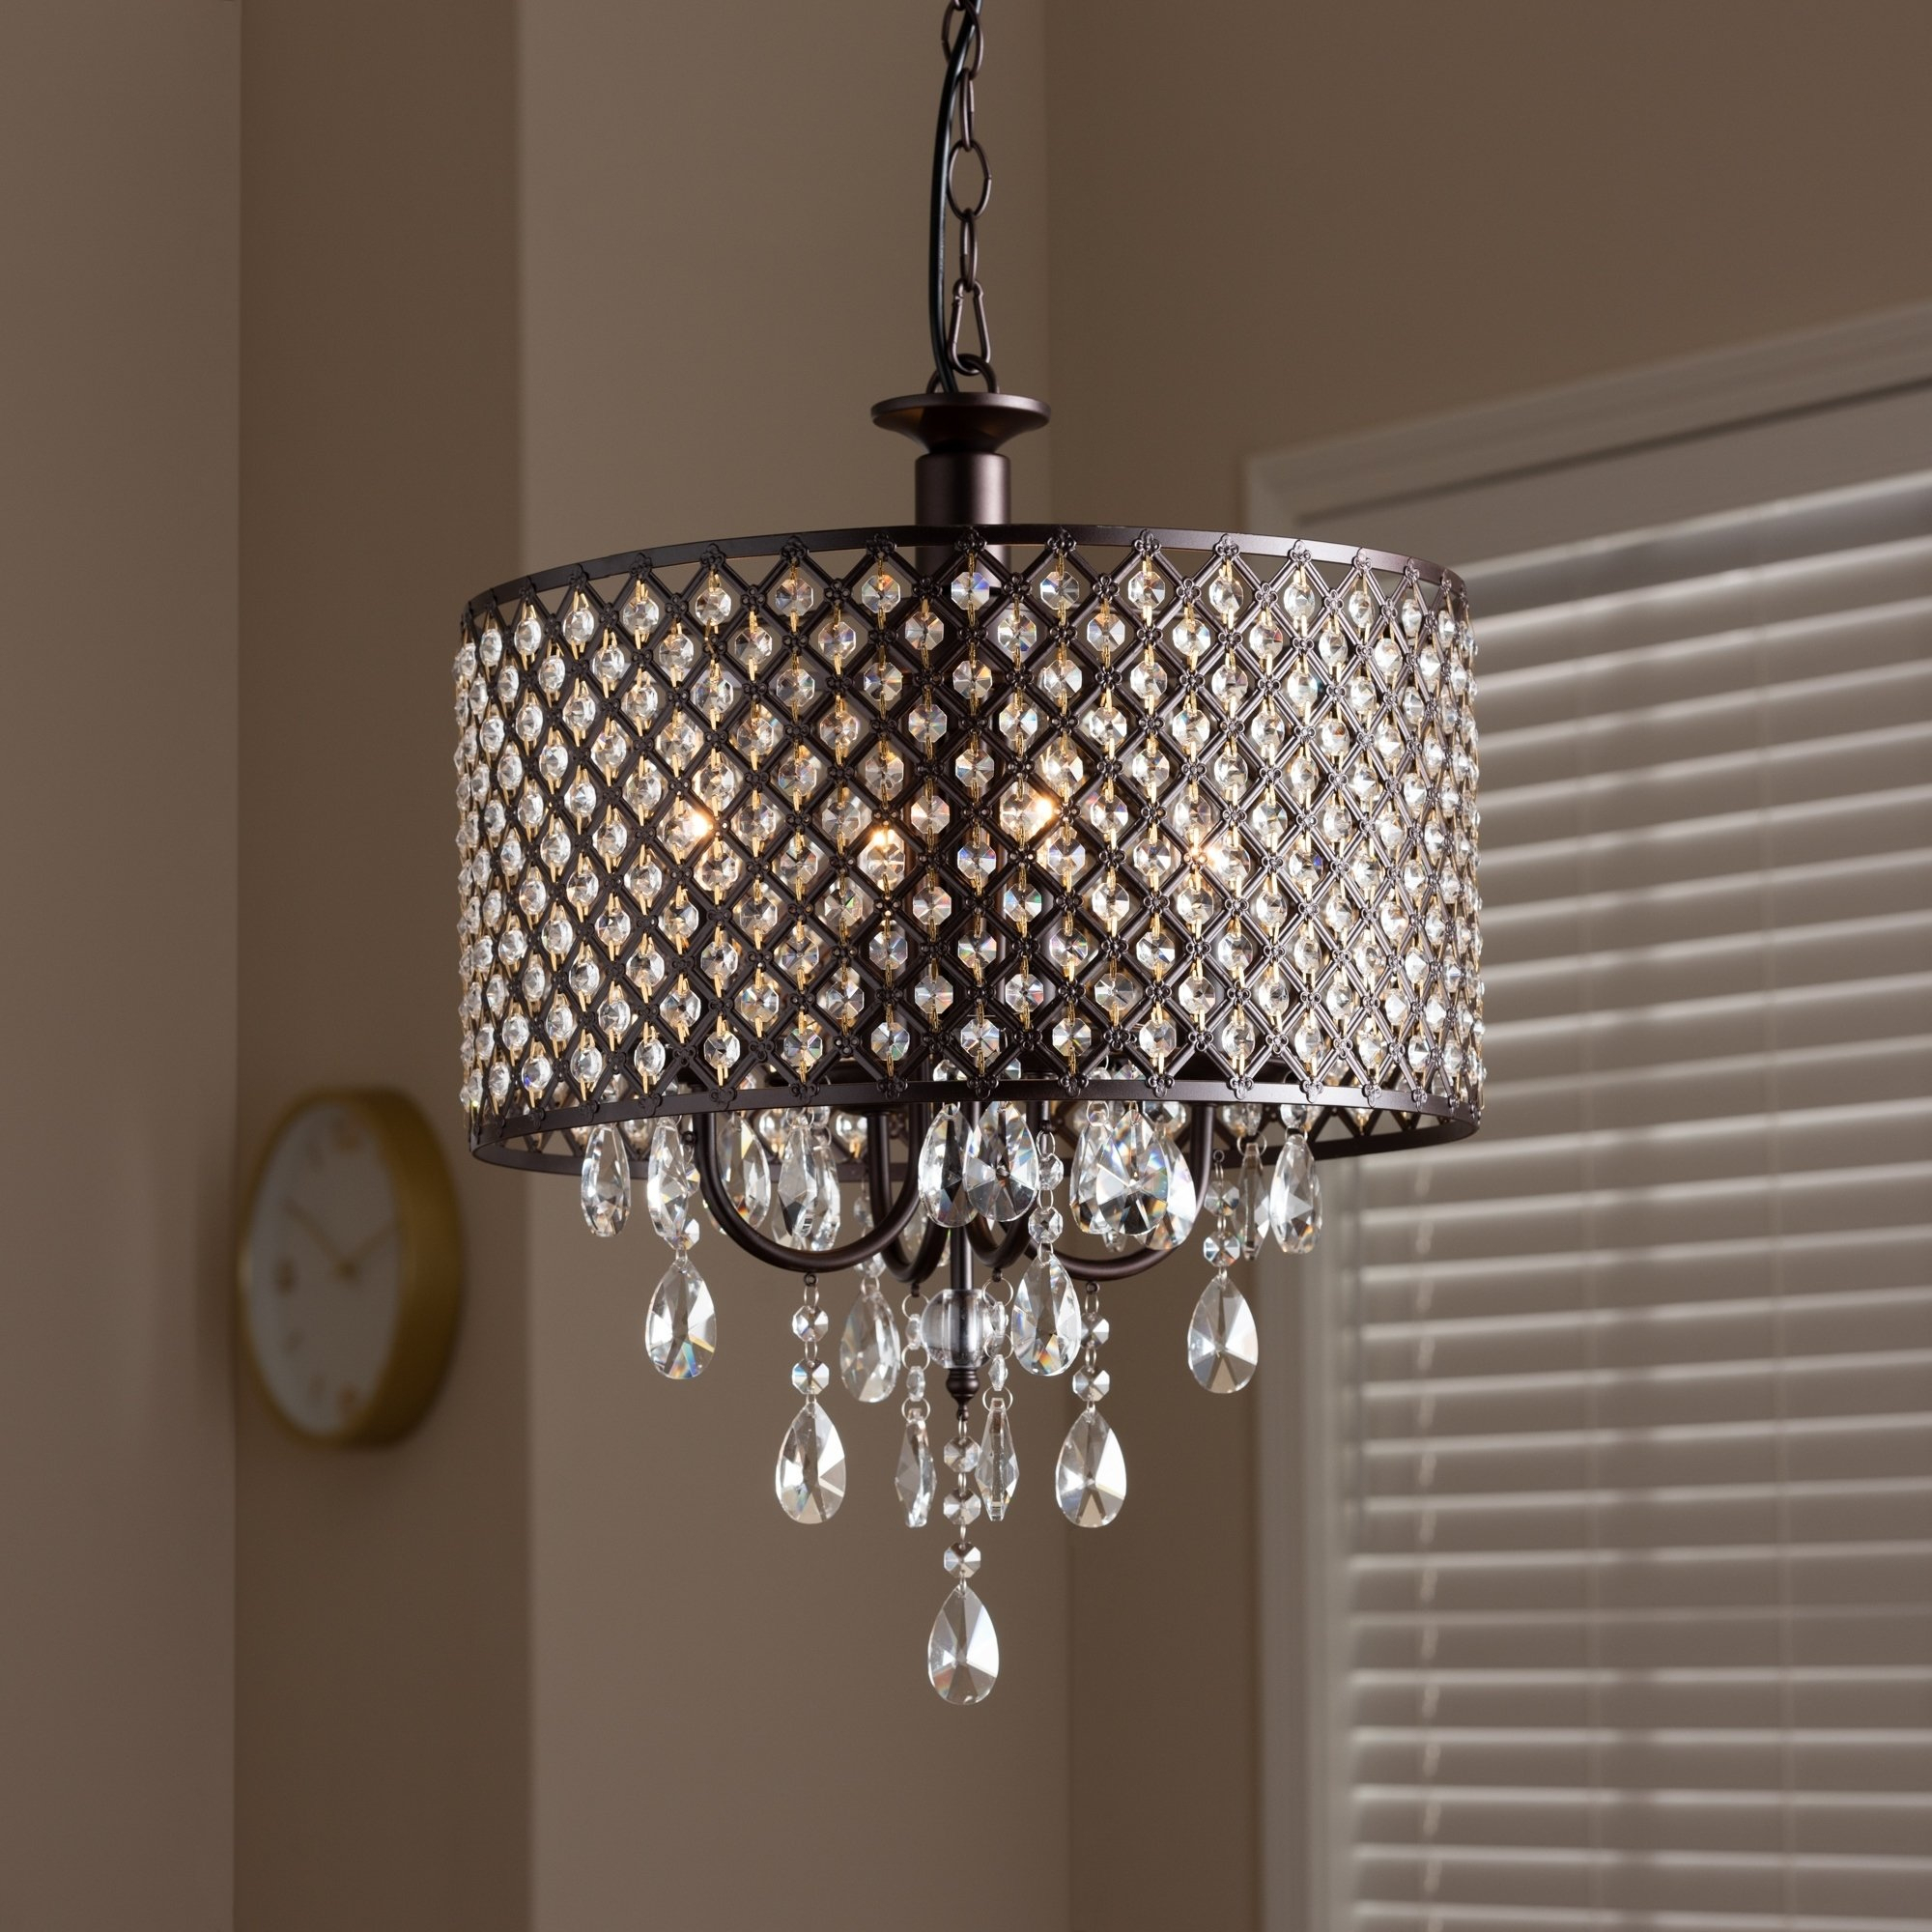 Contemporary Dark Bronze 4-Light Drum Pendant Light for Aldgate 4-Light Crystal Chandeliers (Image 11 of 30)